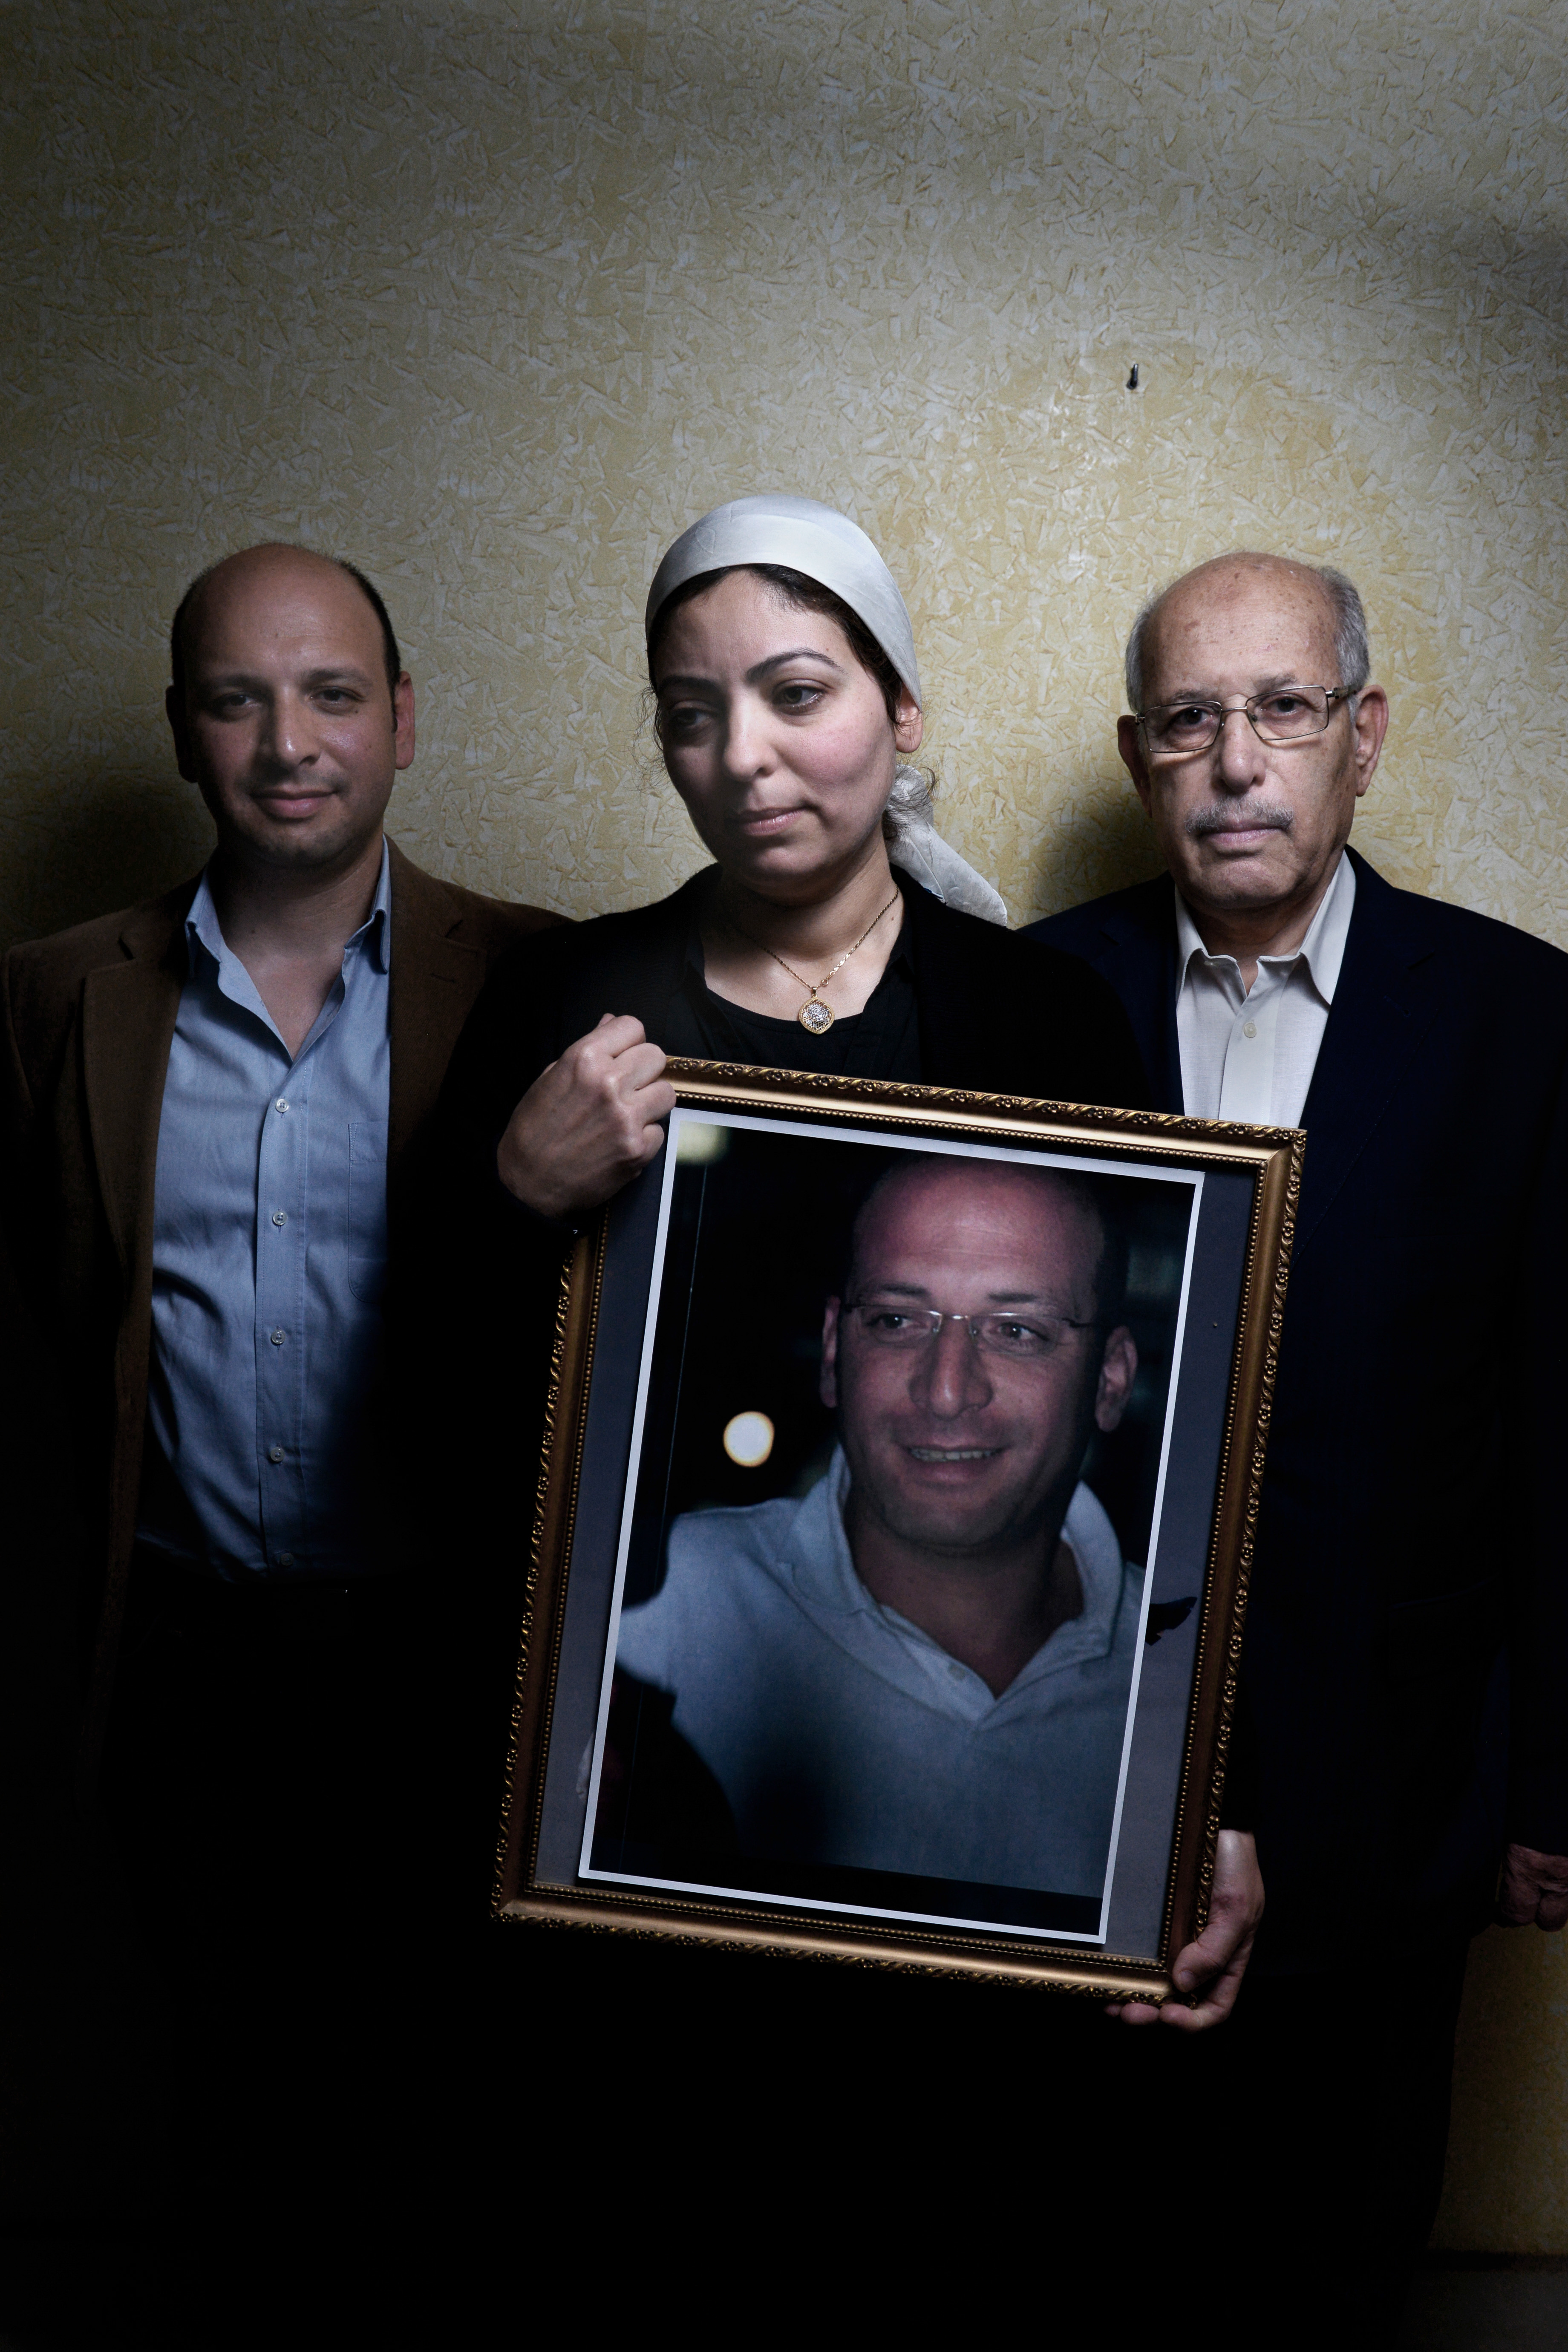 Hazem Helal, Eman Samy and Mohamed Helal, the brother, wife and father of passenger Ahmed HelalFrom  The Losses of EgyptAir Flight 804.